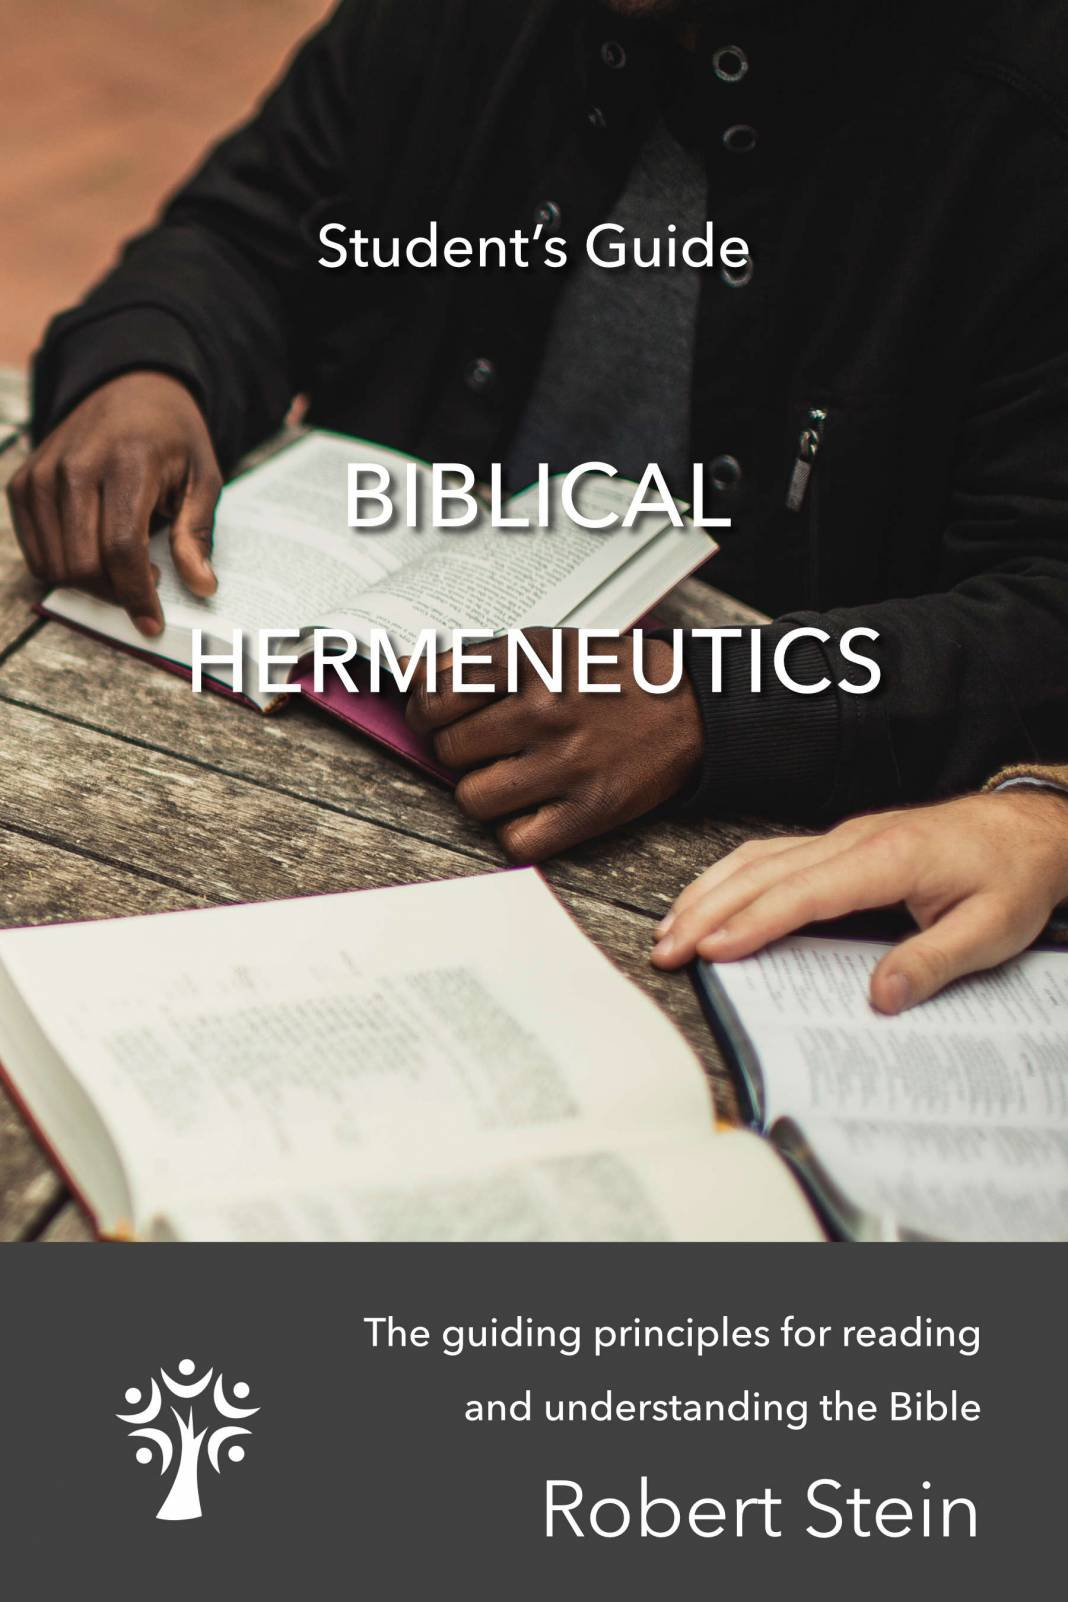 Student's Guide - Biblical Hermeneutics